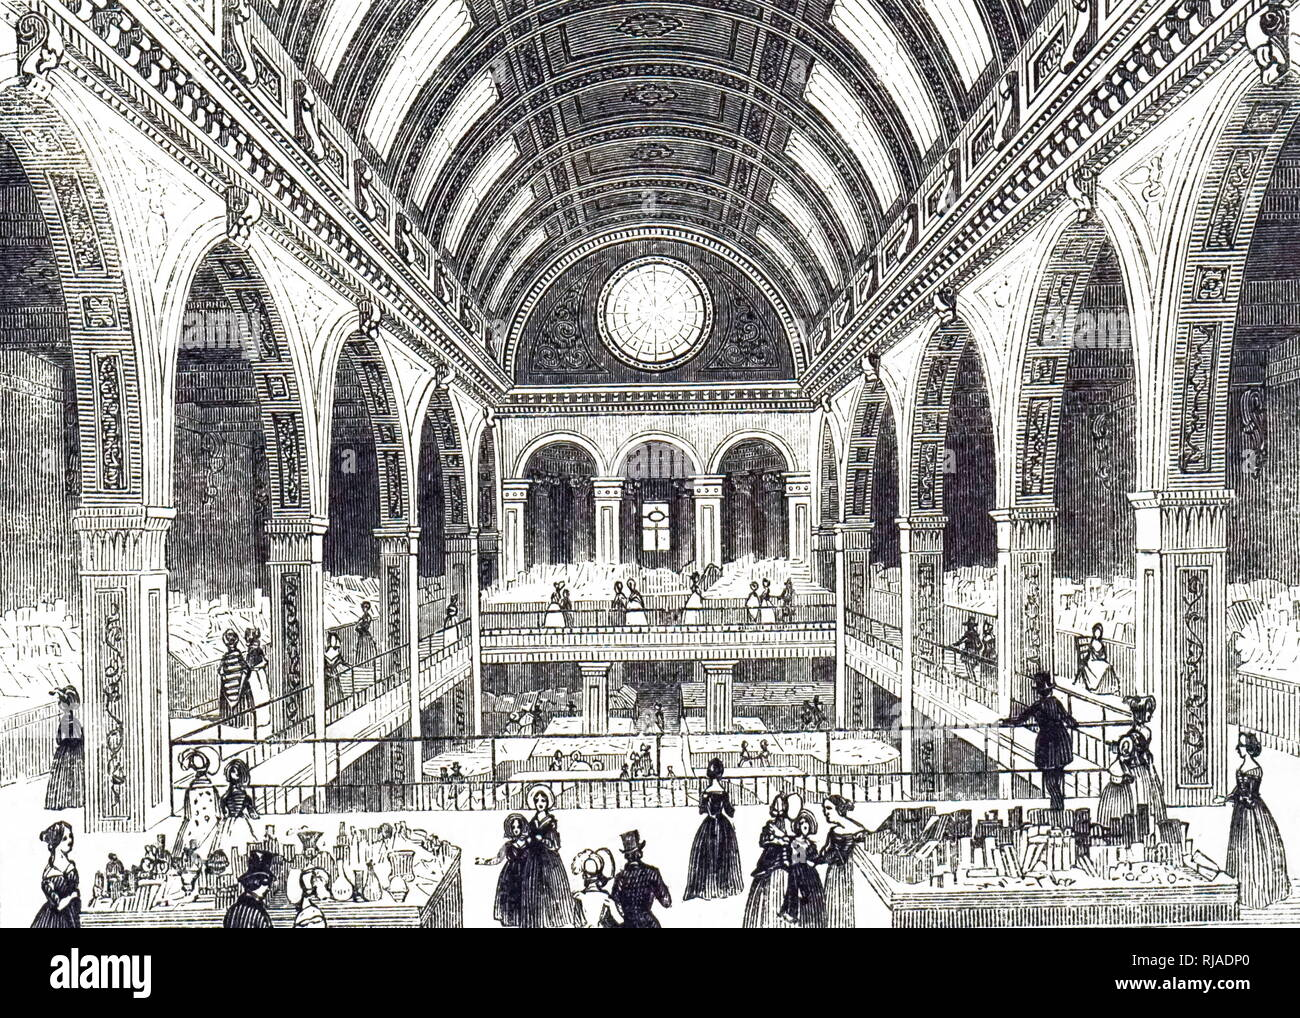 An engraving depicting a Bazar on Oxford Street, London. The first floor was a picture gallery. The next level shown had counters for millinery, lace, hosiery, cutlery, jewellery, toys, children's clothing, etc.. Each stand had a young assistant. Dated 19th century - Stock Image